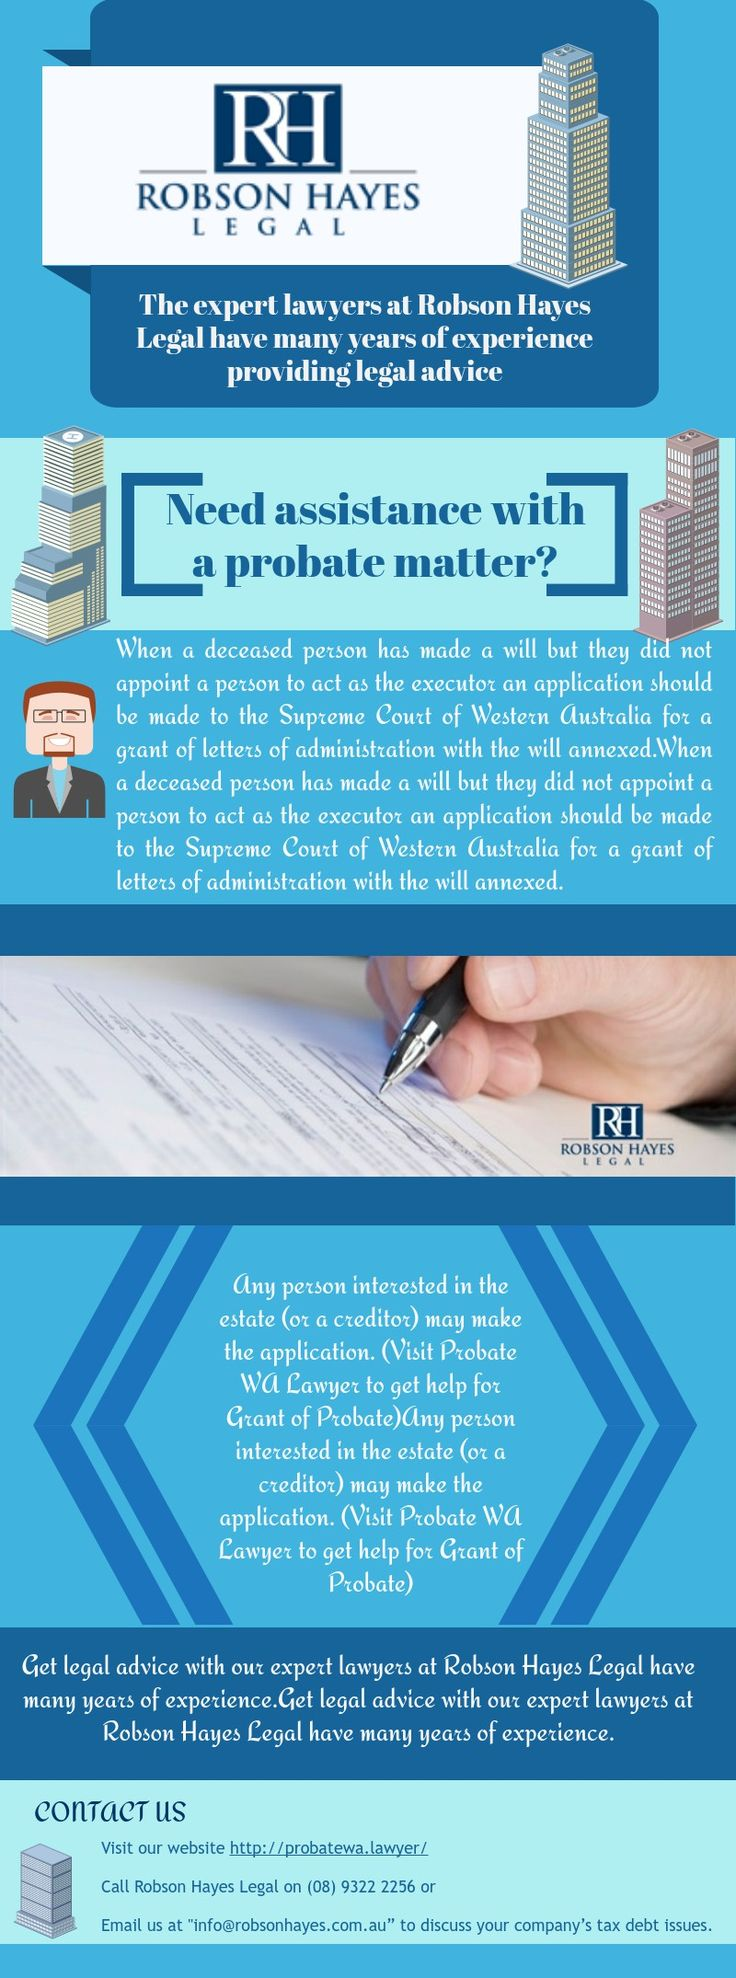 18 best infographics images on pinterest infographic infographics do you need any type of assessment regarding with a probate matter our expert lawyers solutioingenieria Images